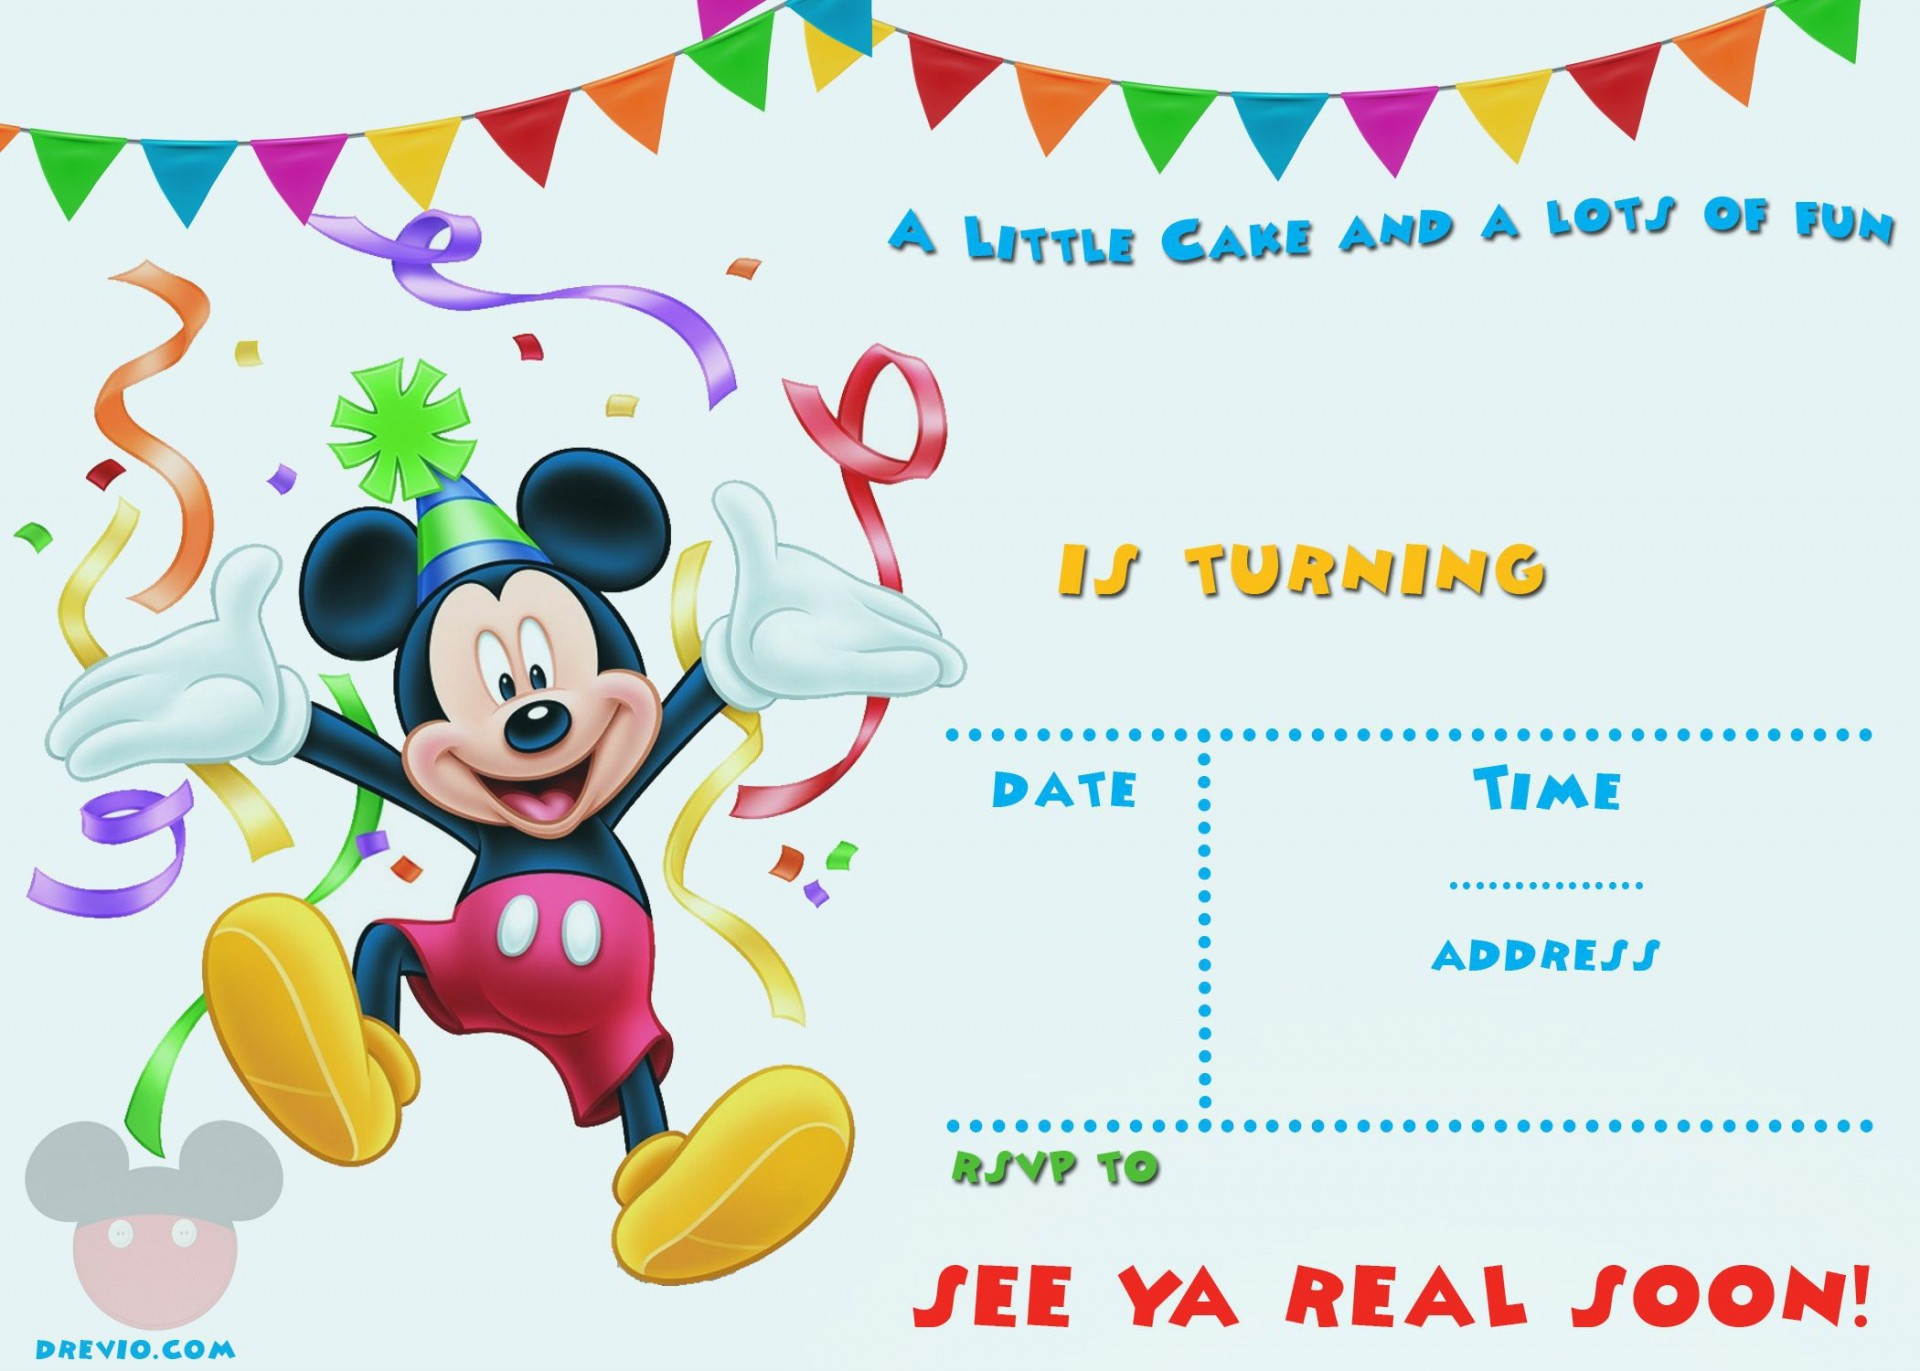 004 Surprising Mickey Mouse Invitation Template Image  Free Diy 1st Birthday Baby Download1920